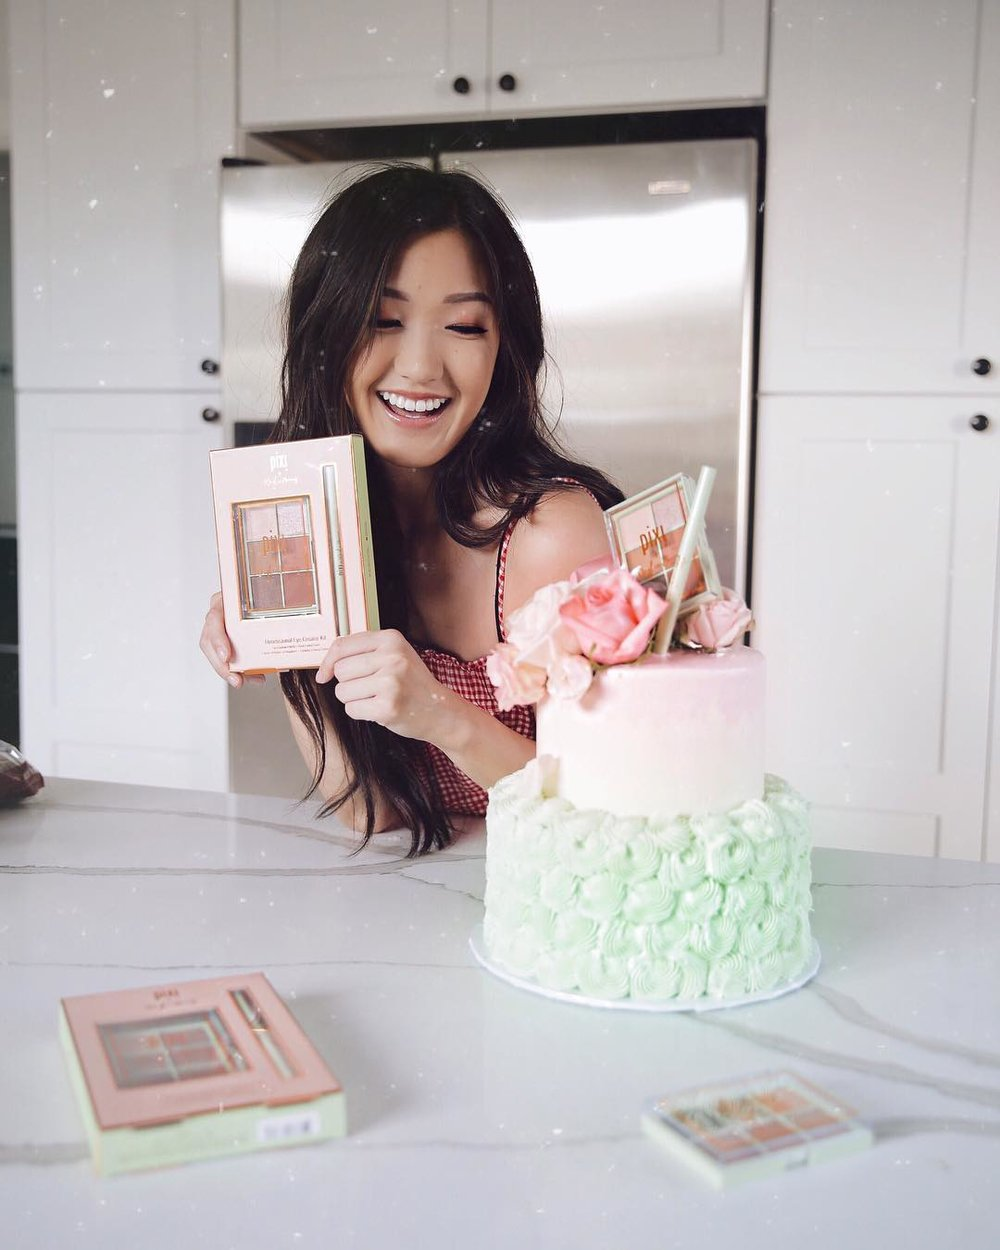 "Weylie Hoang, 25 - With 1.67 million subscribers on YouTube and 440,000 followers on Instagram, WeylieHoang is a social force to be reckoned with. Hoang began her YouTube journey when she was15 years old as a beauty vlogger, uploading her first makeup tutorial in 2007. Besides makeup and beauty, she's known for relatable and personal content featuring relationship updates and advice geared toward young women like her (her most popular video, with almost 10 million views, is about how to put on a tampon!). Some of her most watched videos recently have explored her cultural background, such as one where she speaks Chinese and a video where she discusses her struggles growing up Chinese American, including being made fun of for her facial features and having trouble understanding English as a kid ""because the only way she could express [herself was] in Chinese."" — C.N.Image Courtesy of Weylie Hoang"